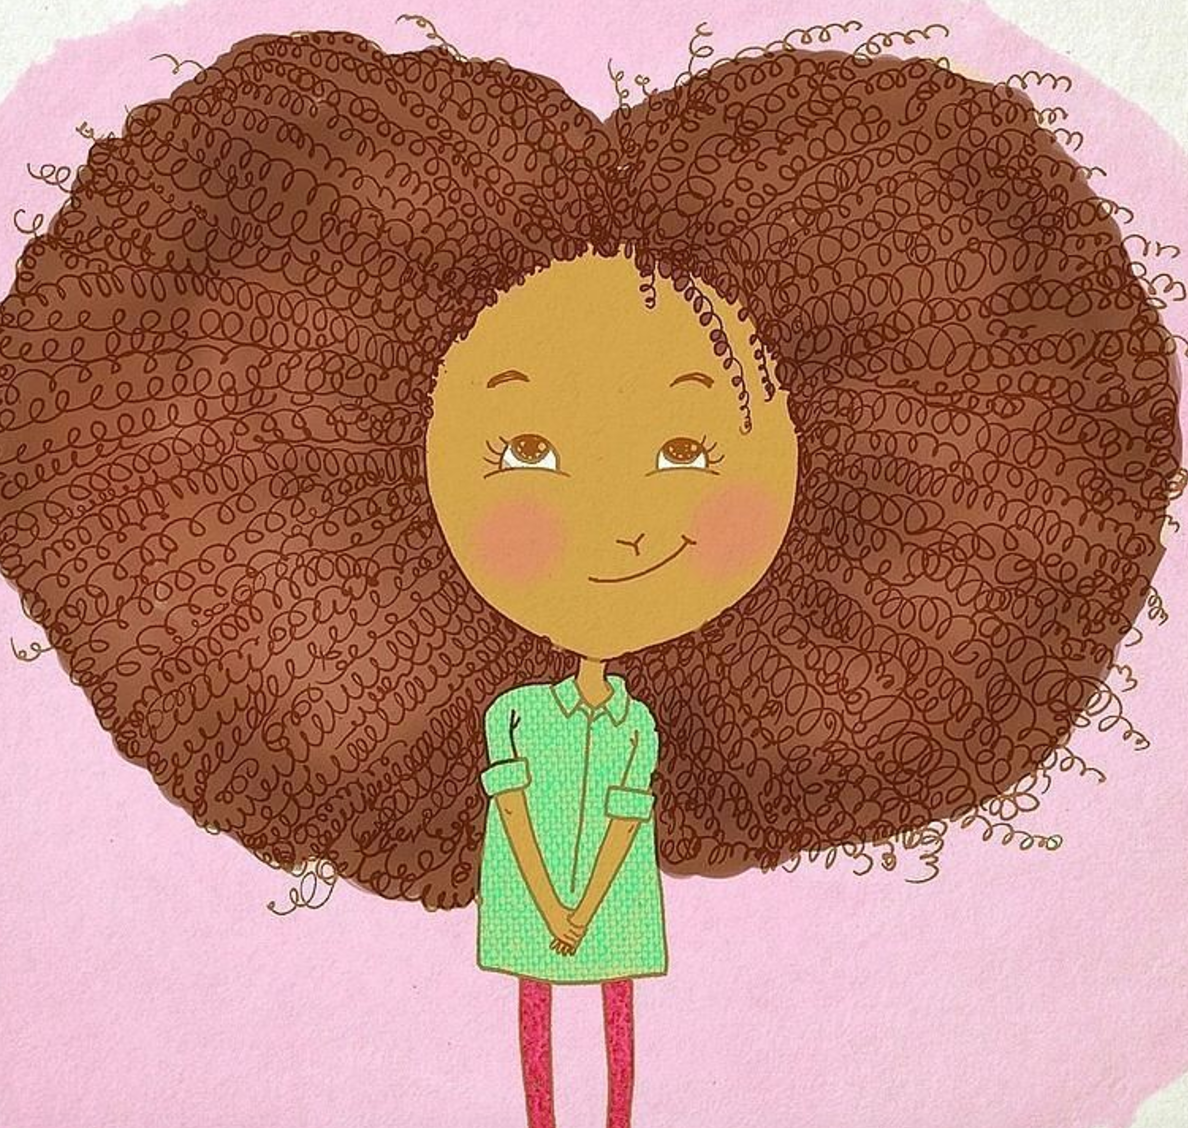 For All The Black Girls Teased About Their Natural Hair, This Book Is For You